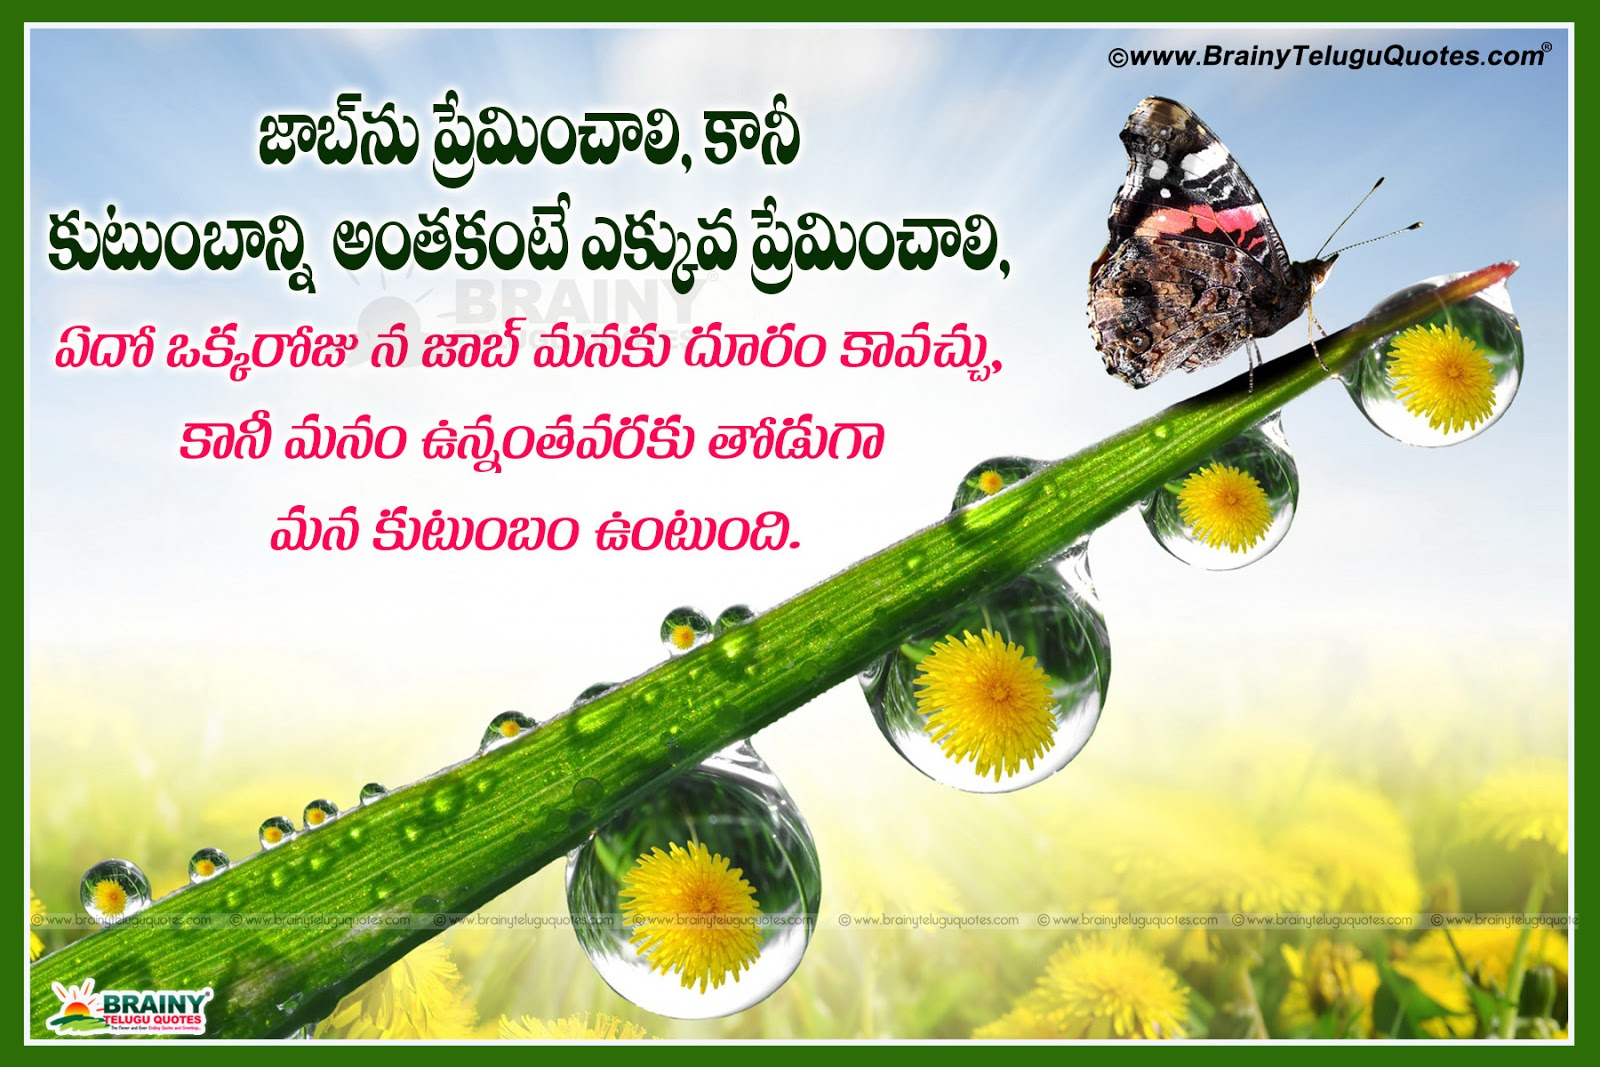 Telugu Best Family And Relationship Best Attitude Change Quotes For Better Life